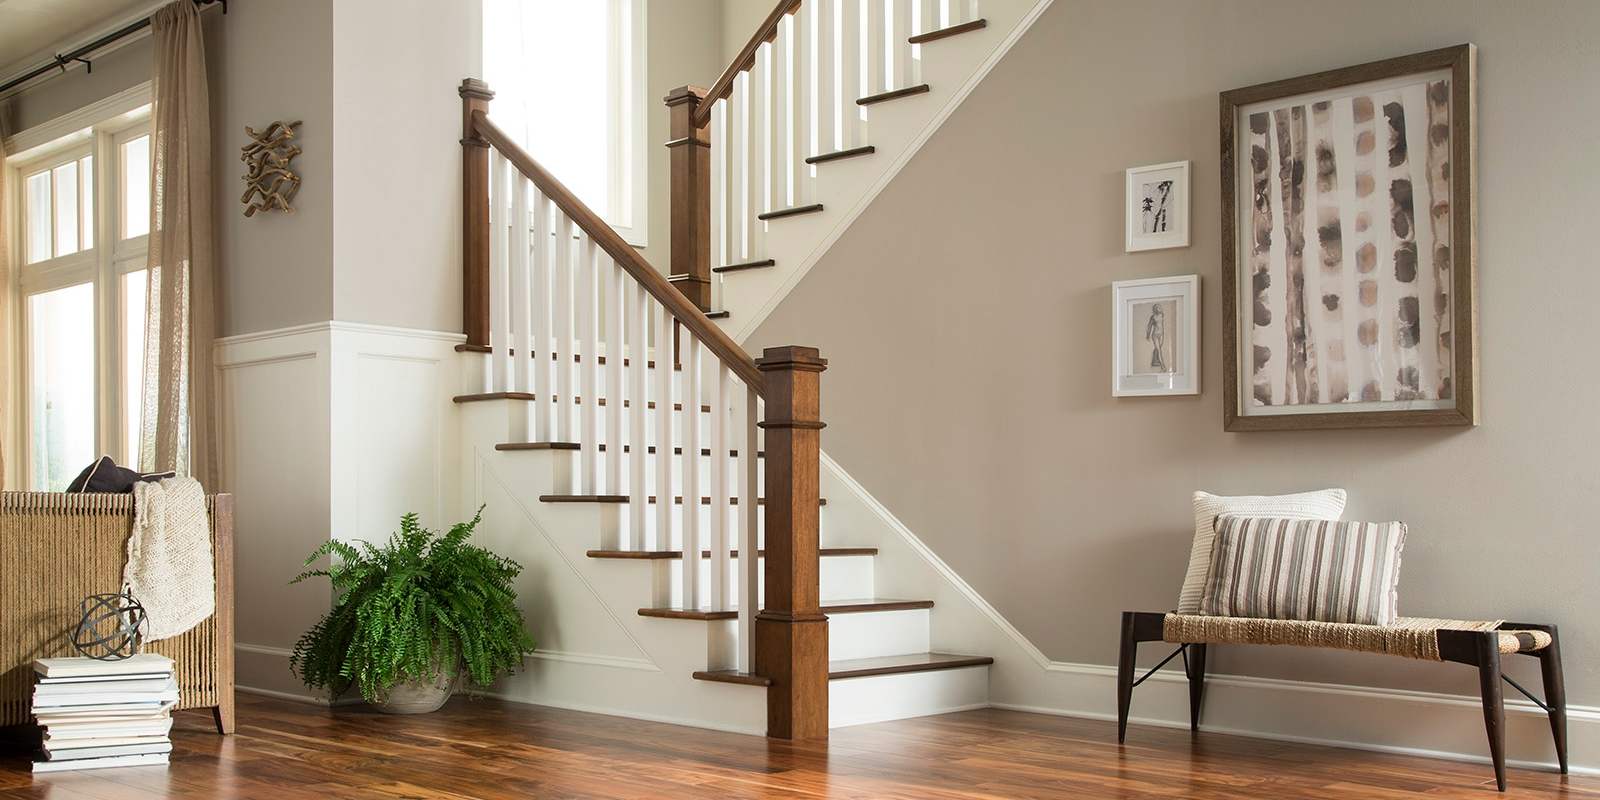 Stairs Stair Parts Attic Stairs Tague Lumber | Staircase Companies Near Me | Wrought Iron Balusters | Stair Remodel | Stair Parts | Stair Stringers | Stair Railing